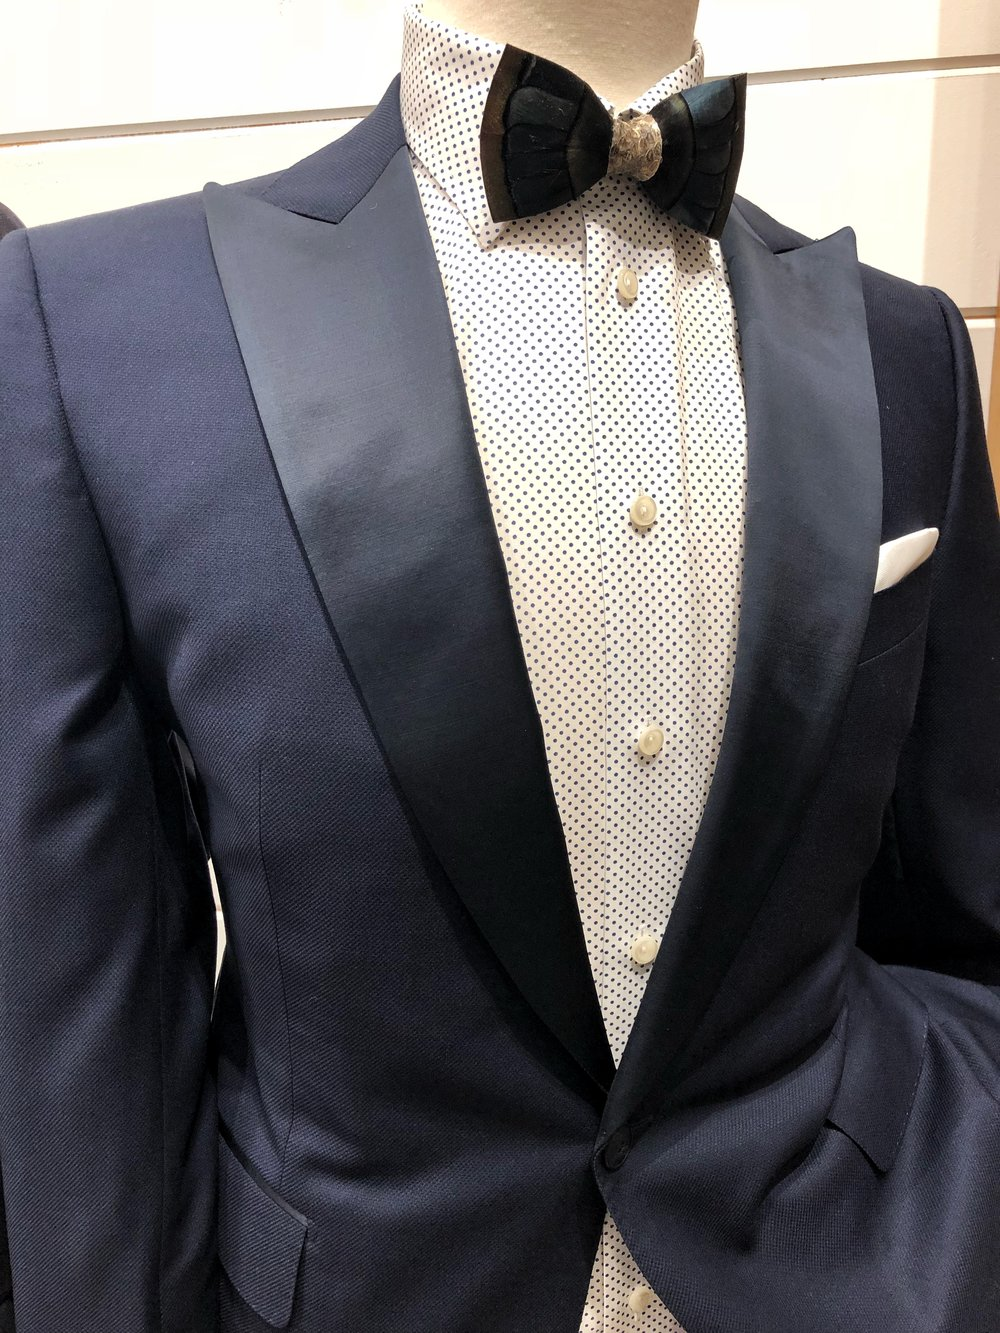 brackish-formal-bowtie.jpg